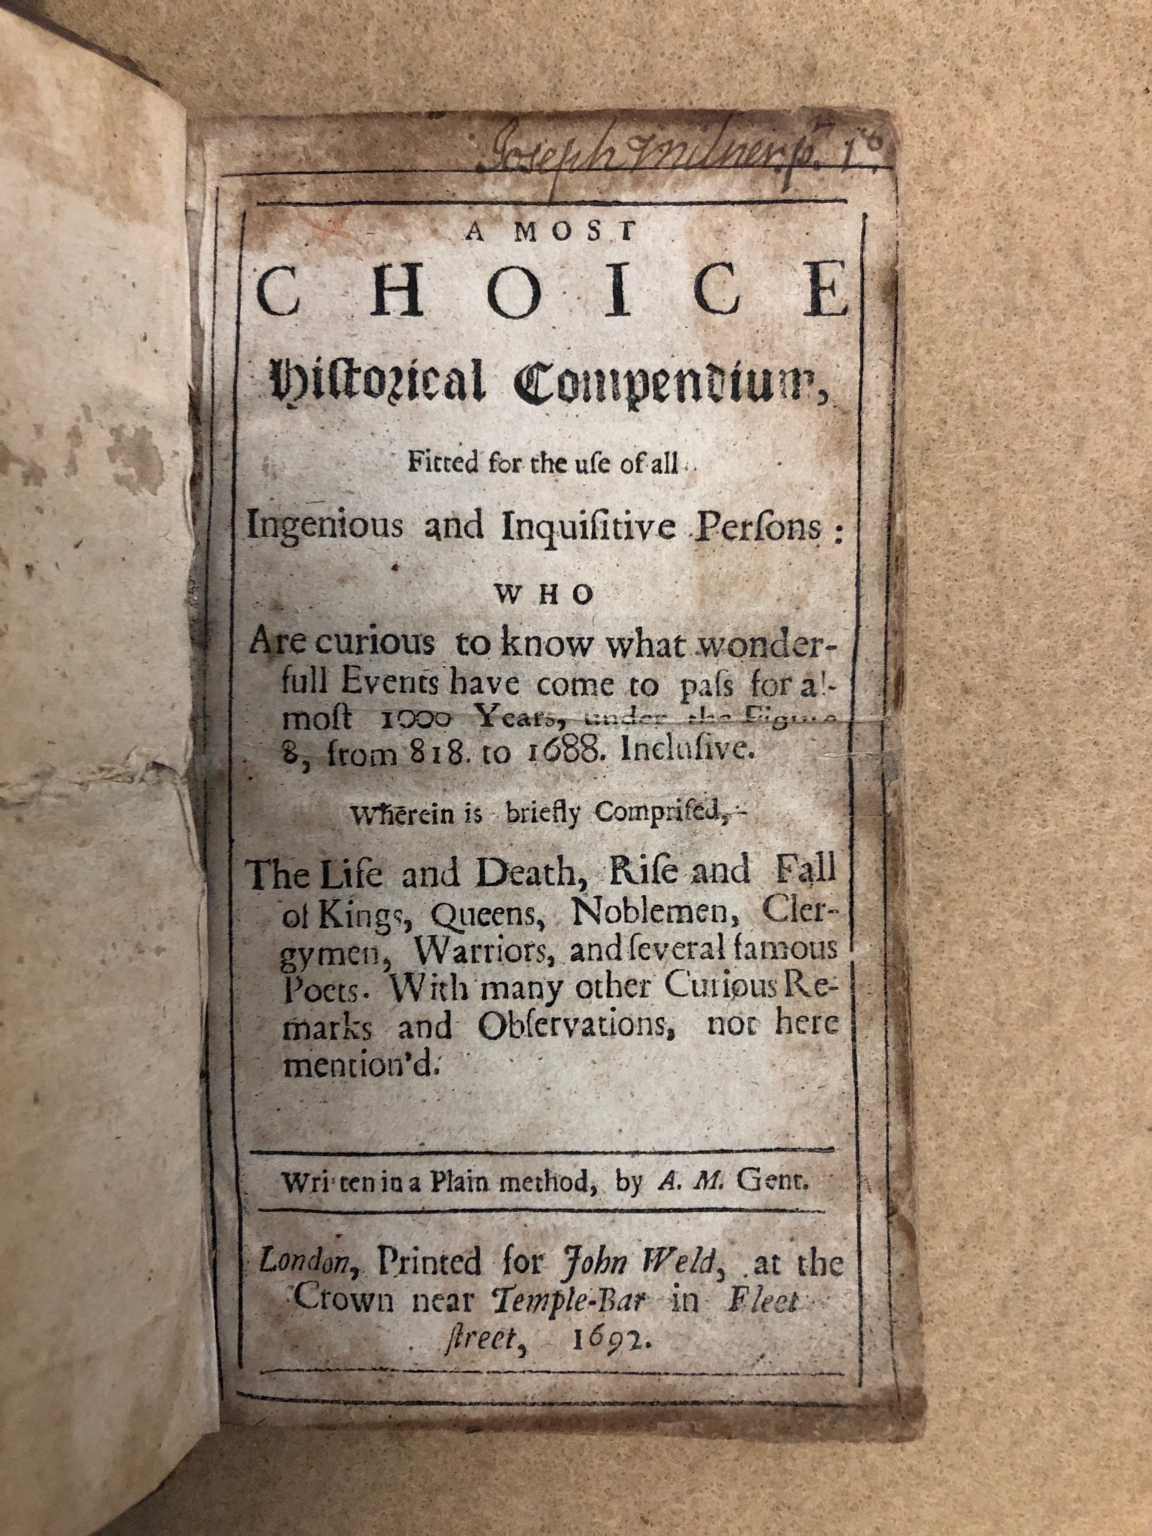 A most choice historical compendium : fitted for the use of all ingenious and inquisitive persons who are curious to know what wonderfull events have come to pass for almost 1000 years, under the figure 8, from 818 to 1688 inclusive : wherein is briefly comprised, the life and death, rise and fall of kings, queens, noblemen, clergymen, warriors and several famous poets : with many other curious remarks and observations, not here mention'd / written in a plain method, by A.M., Gent.